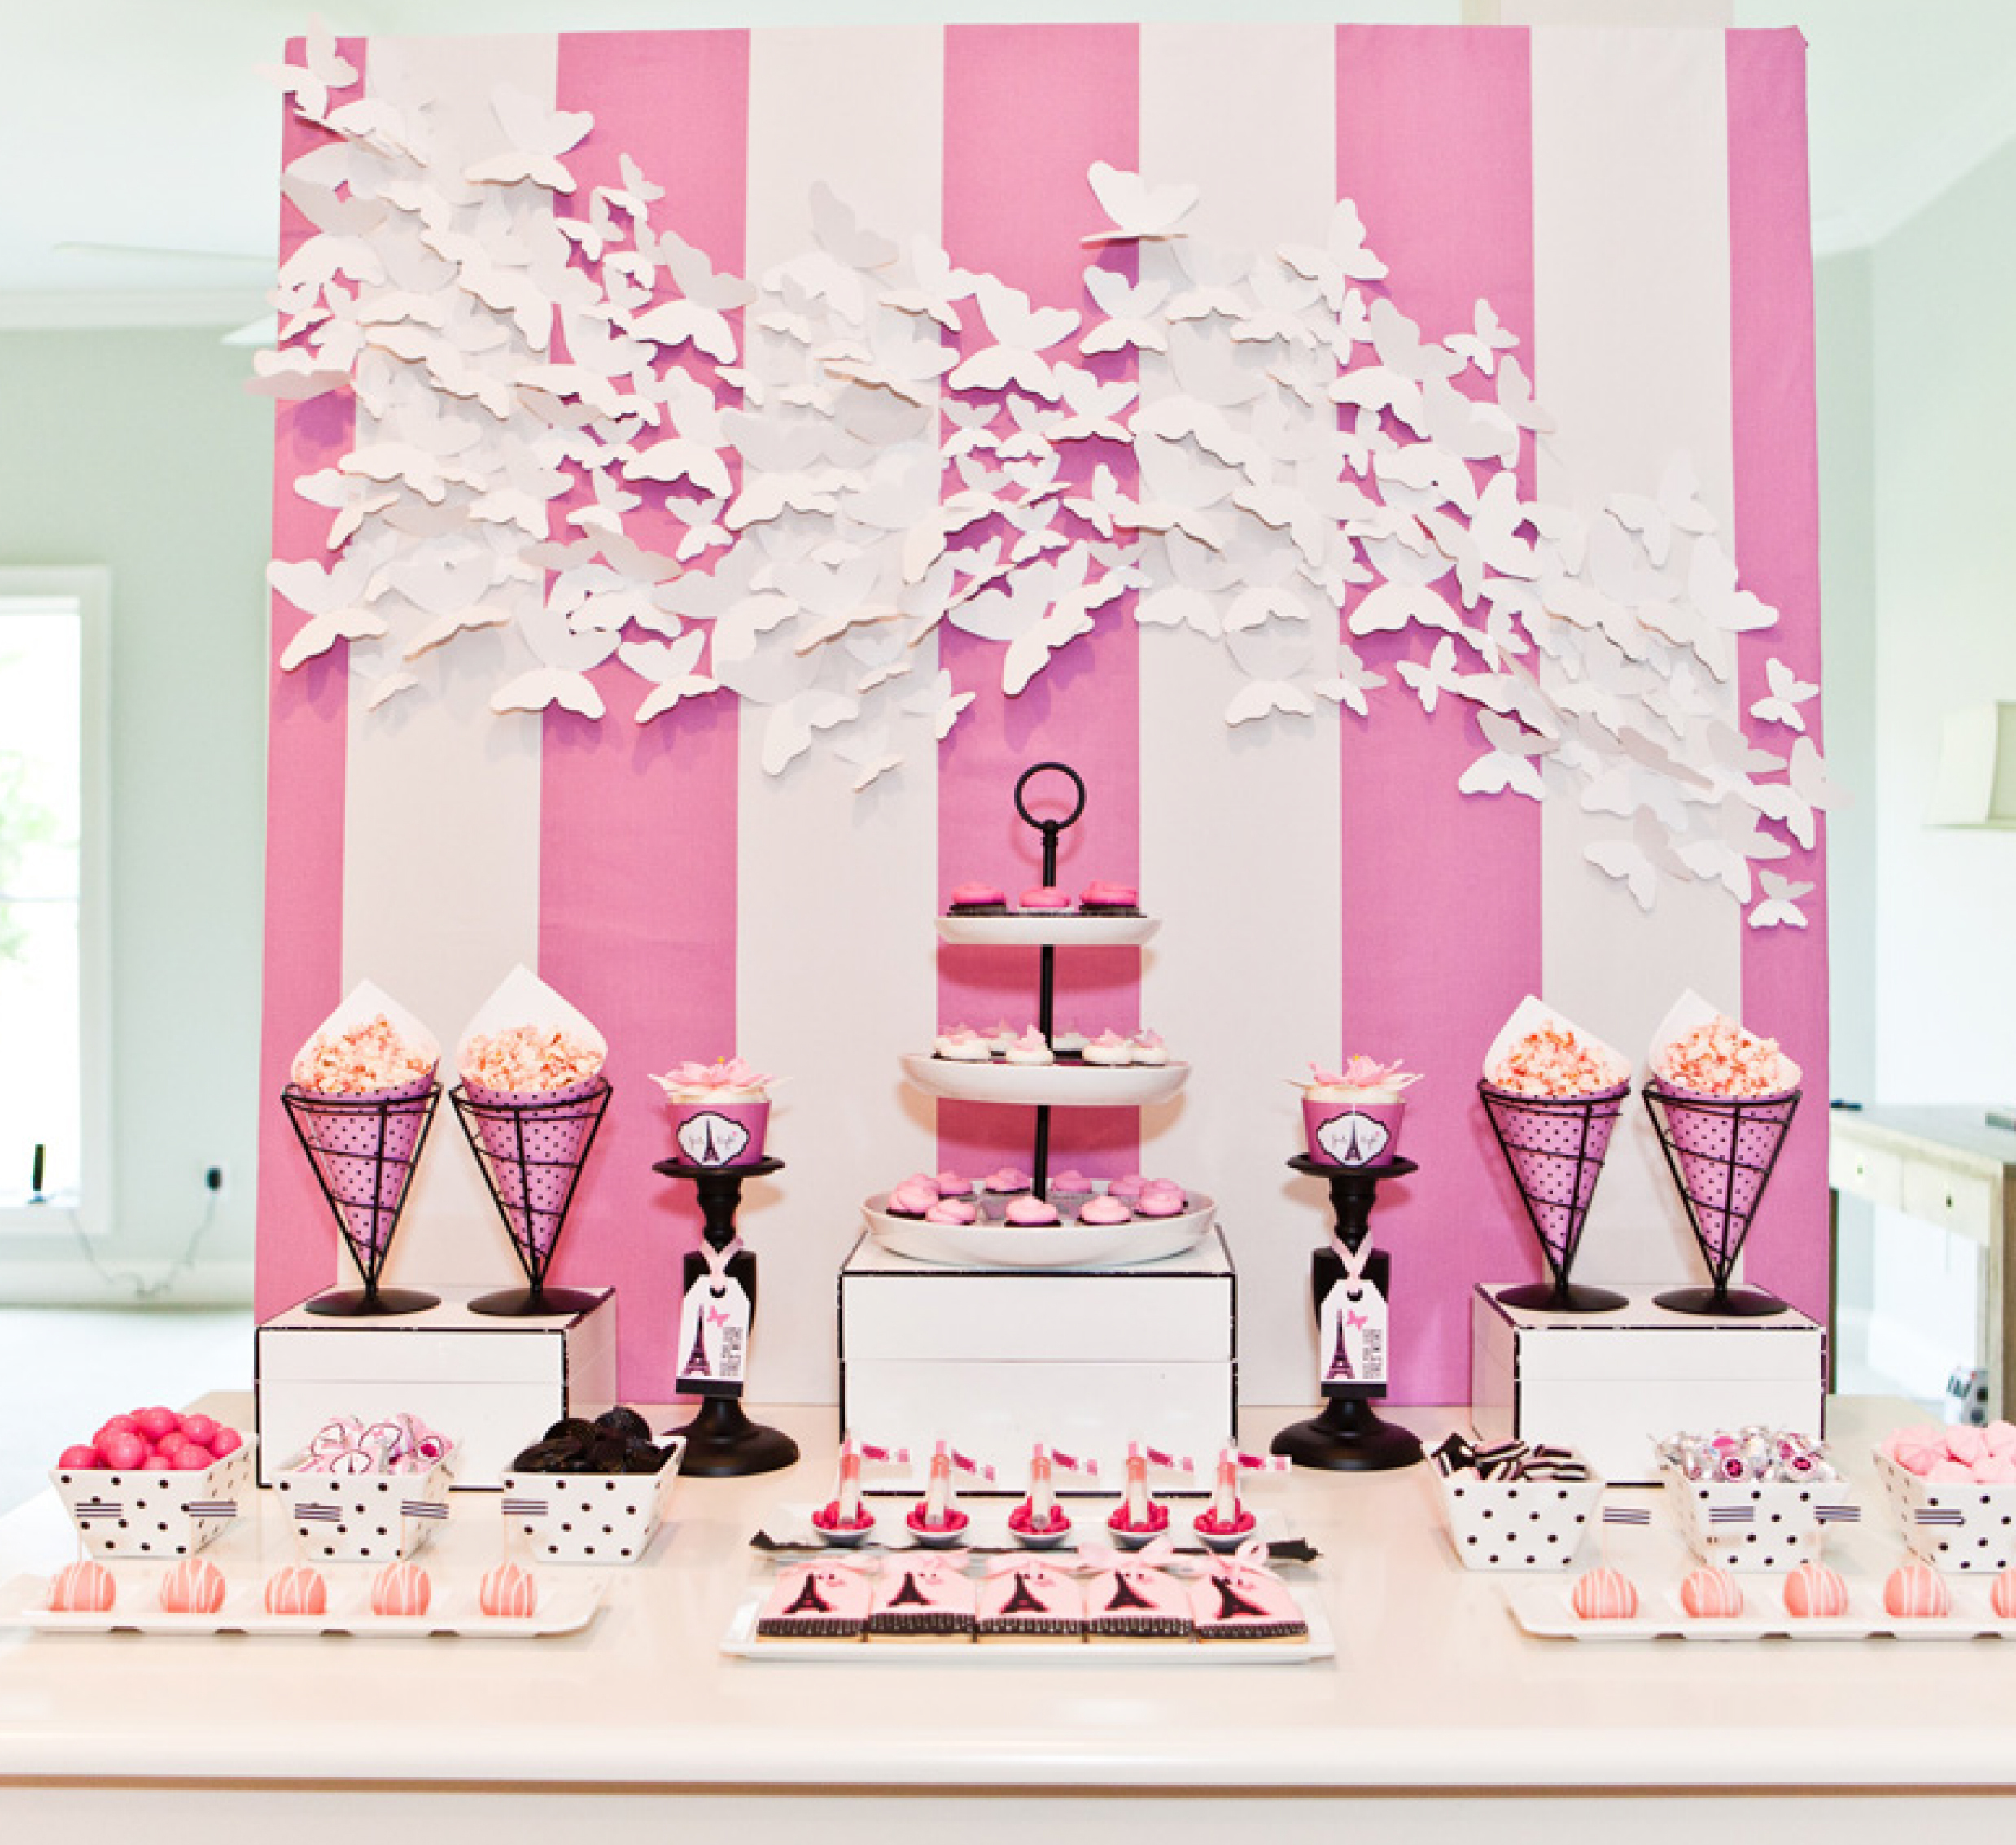 BRIDESMAIDS Girls Night In Photo Shoot – The Dessert Table - Anders ...